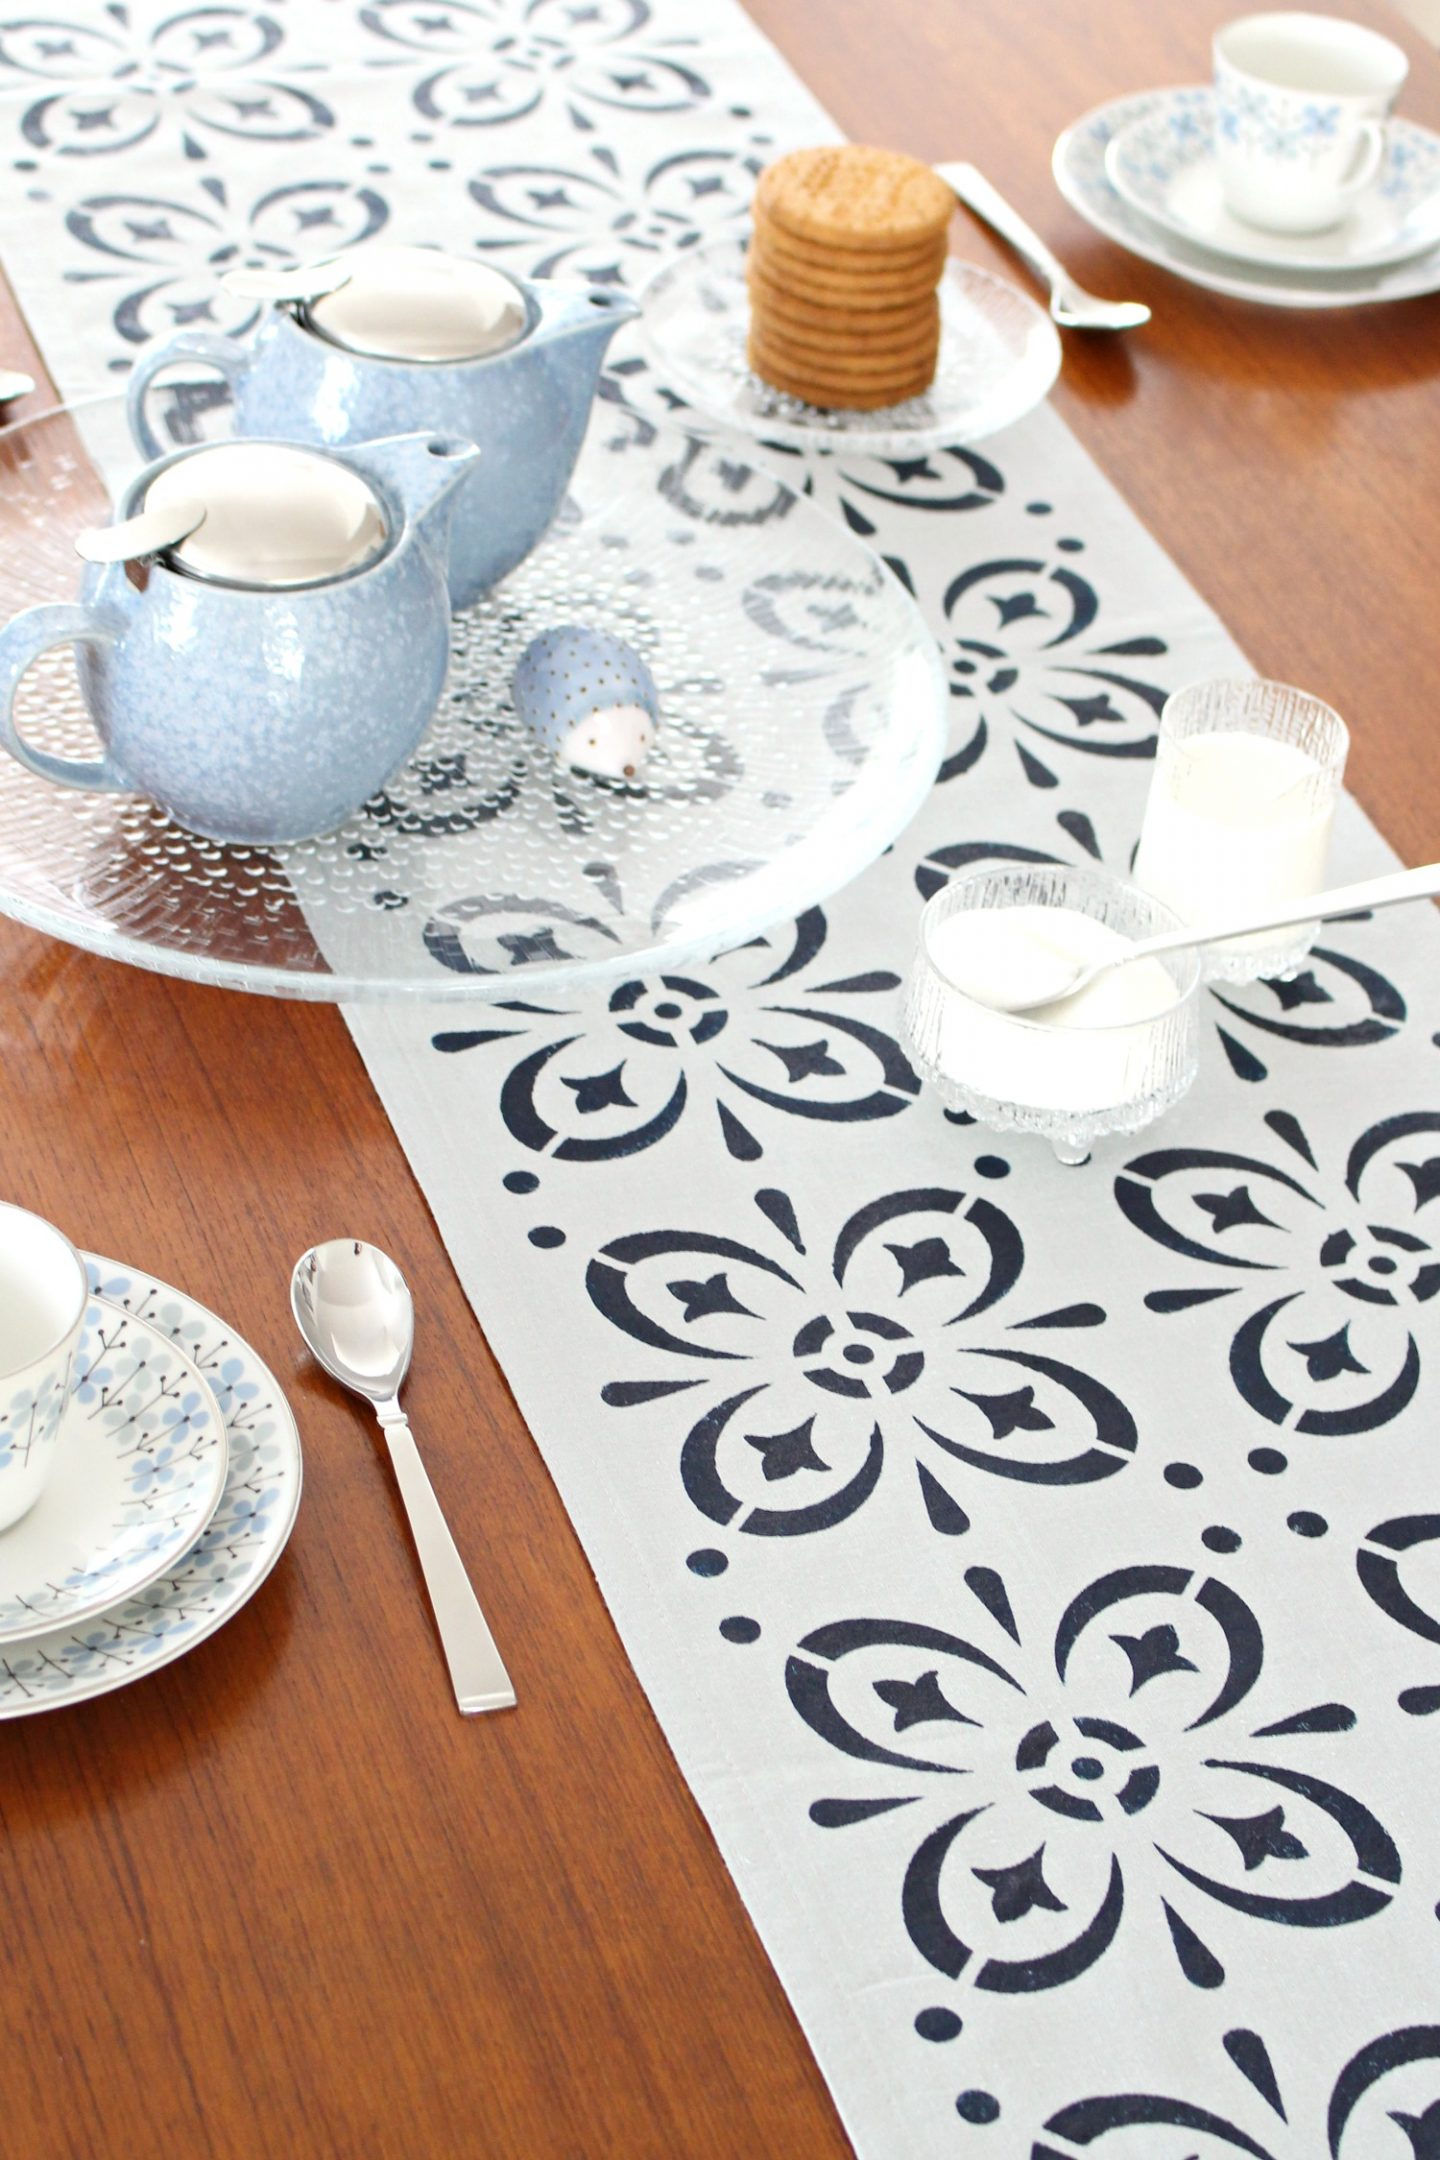 DIY Table Runner Idea